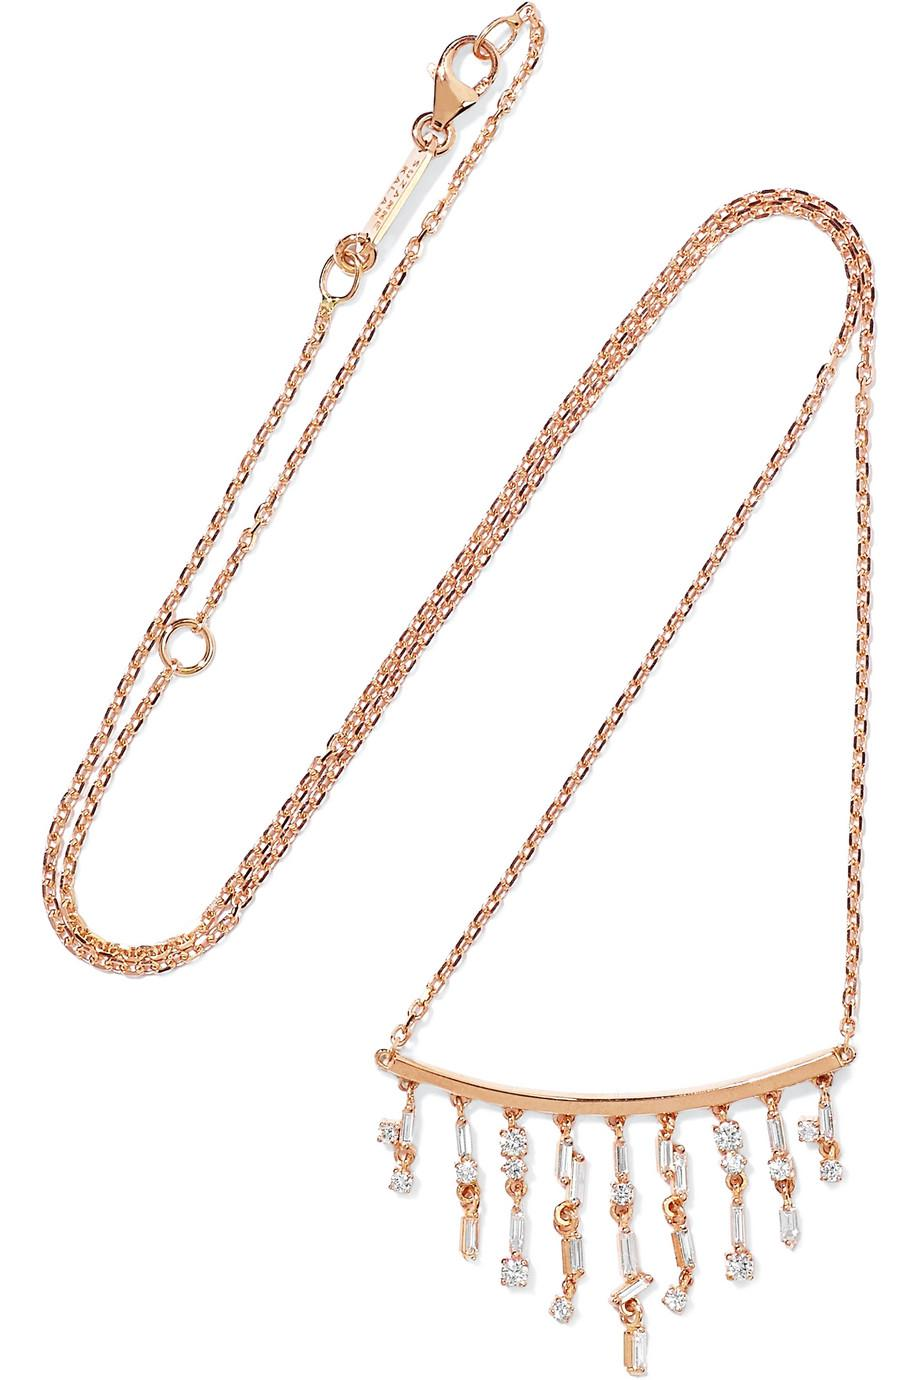 Suzanne Kalan 18-karat Rose Gold Diamond Necklace dAbRV